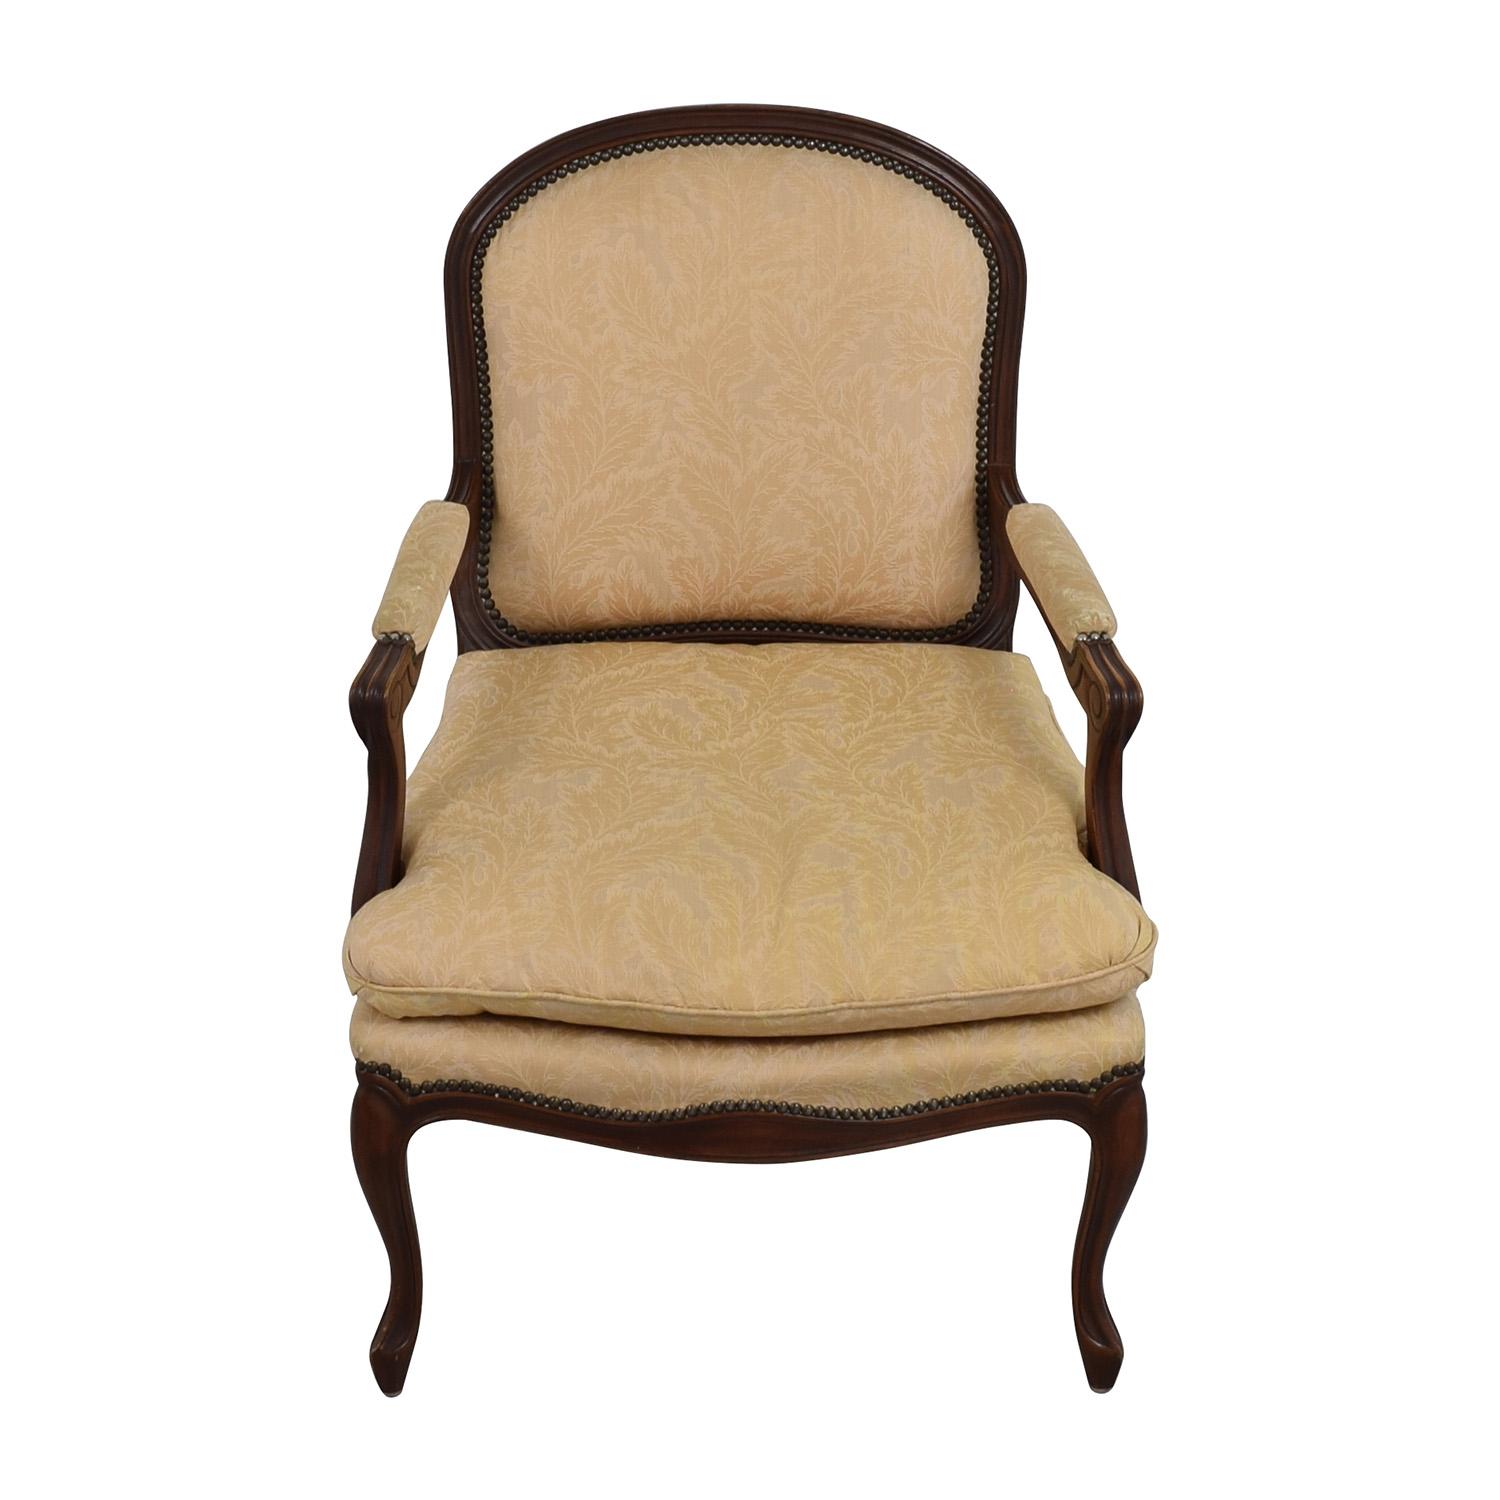 75 off gold floral jacquard upholstered studded accent for Upholstered studded dining chairs